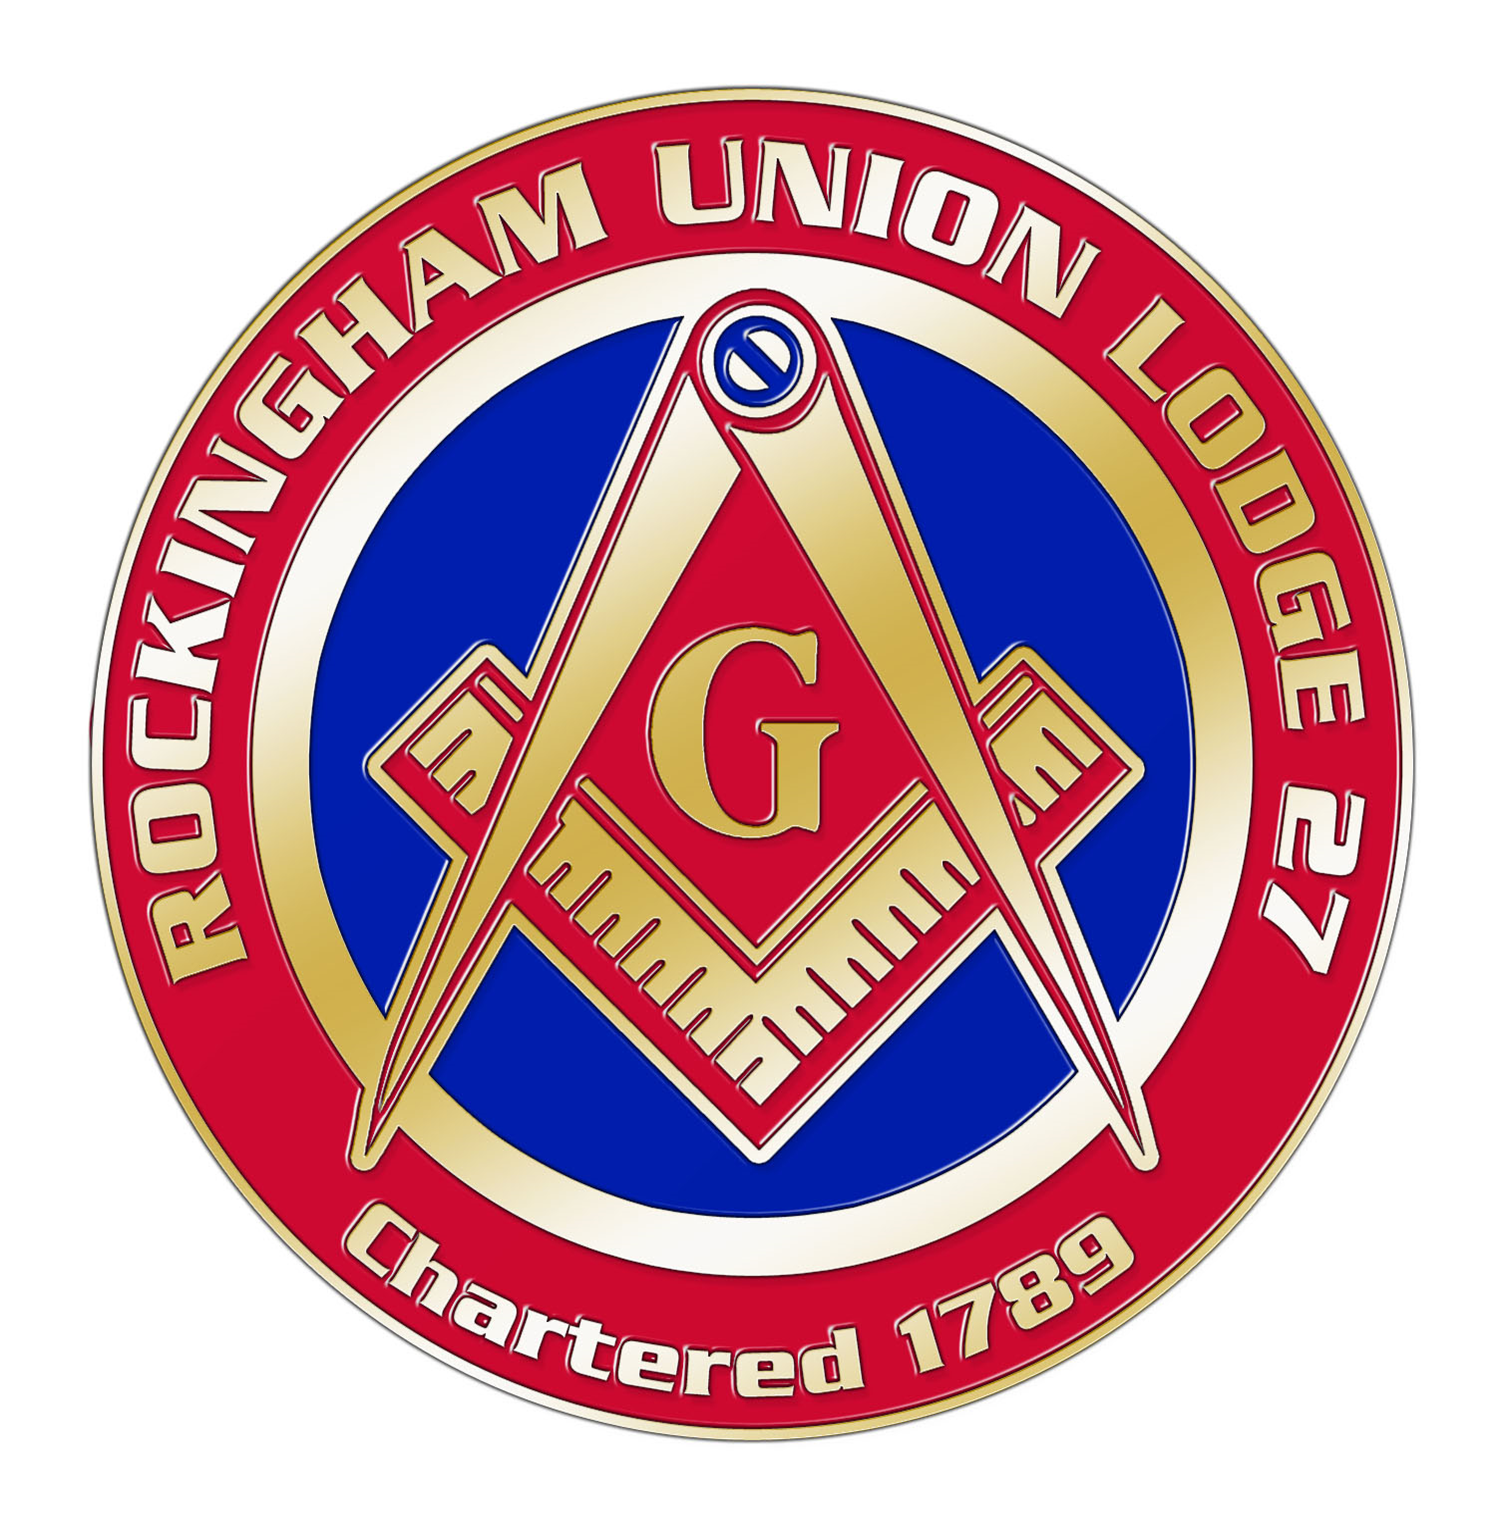 Rockingham Union Lodge No.27